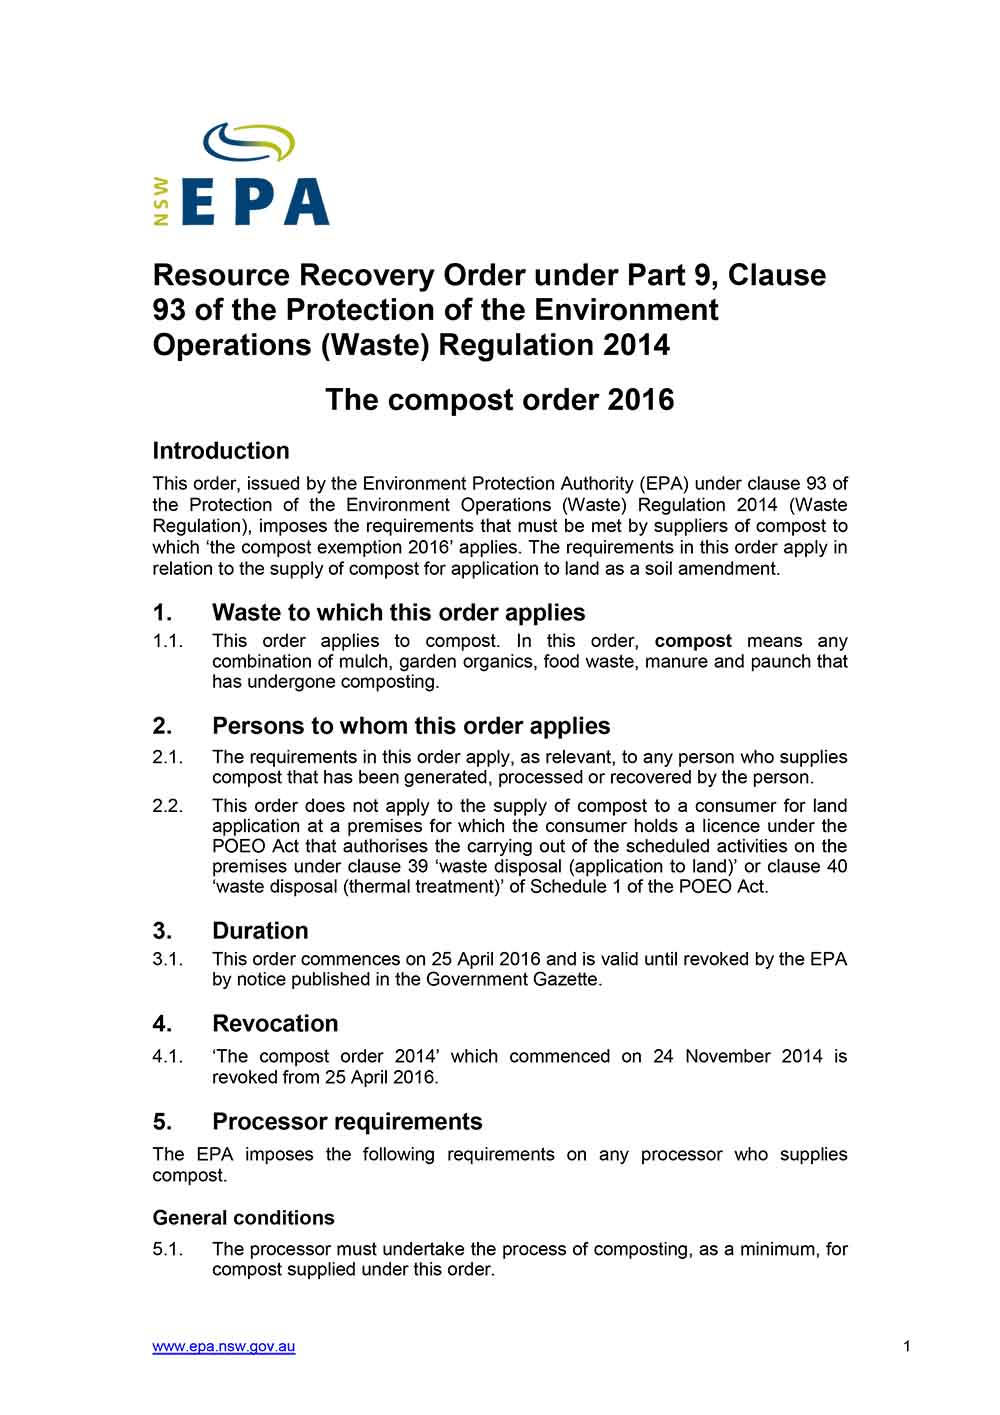 EPA Resource Recovery Order